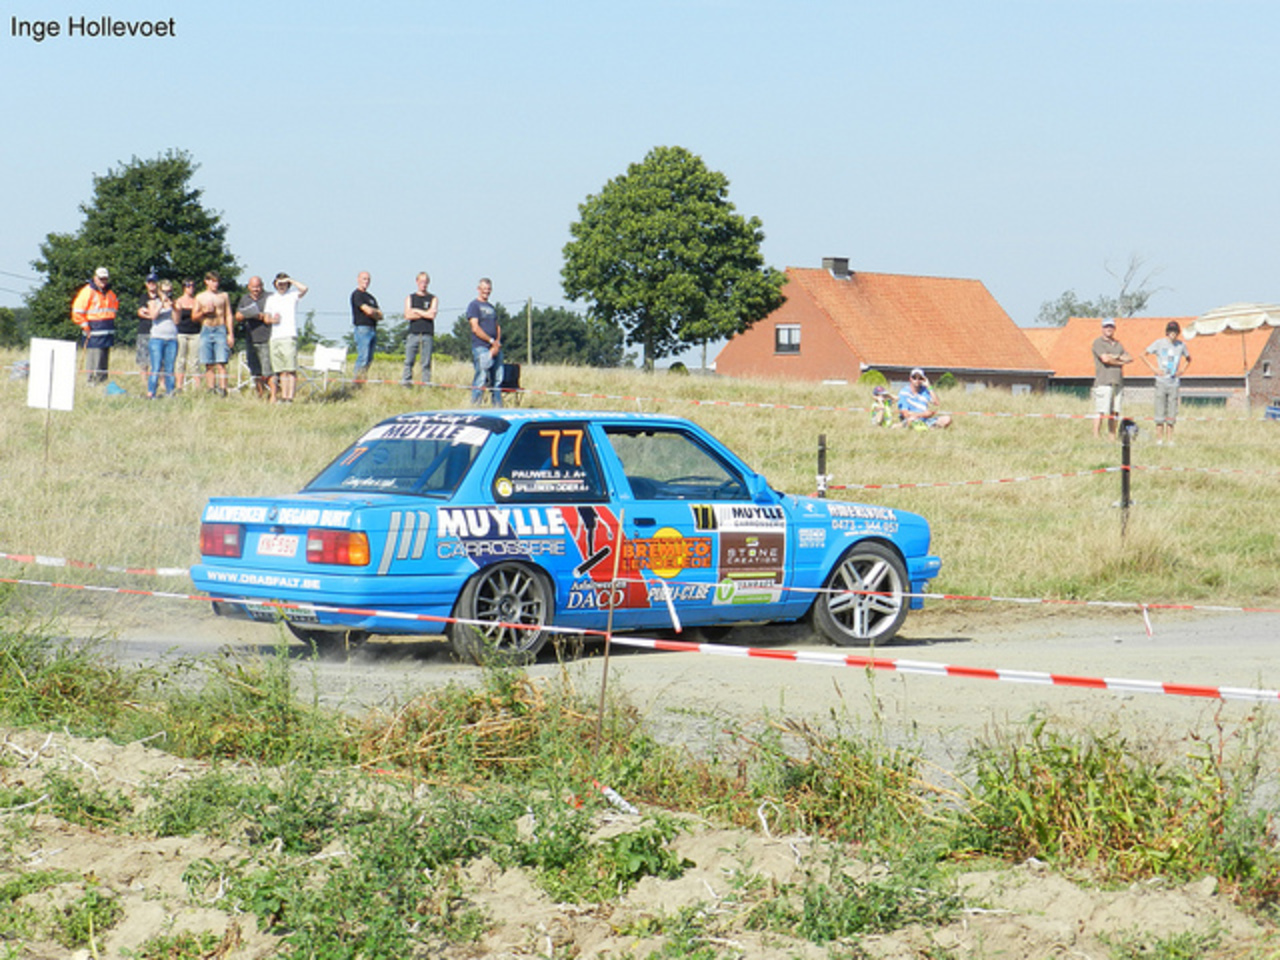 77 pauwels | Flickr - Photo Sharing!